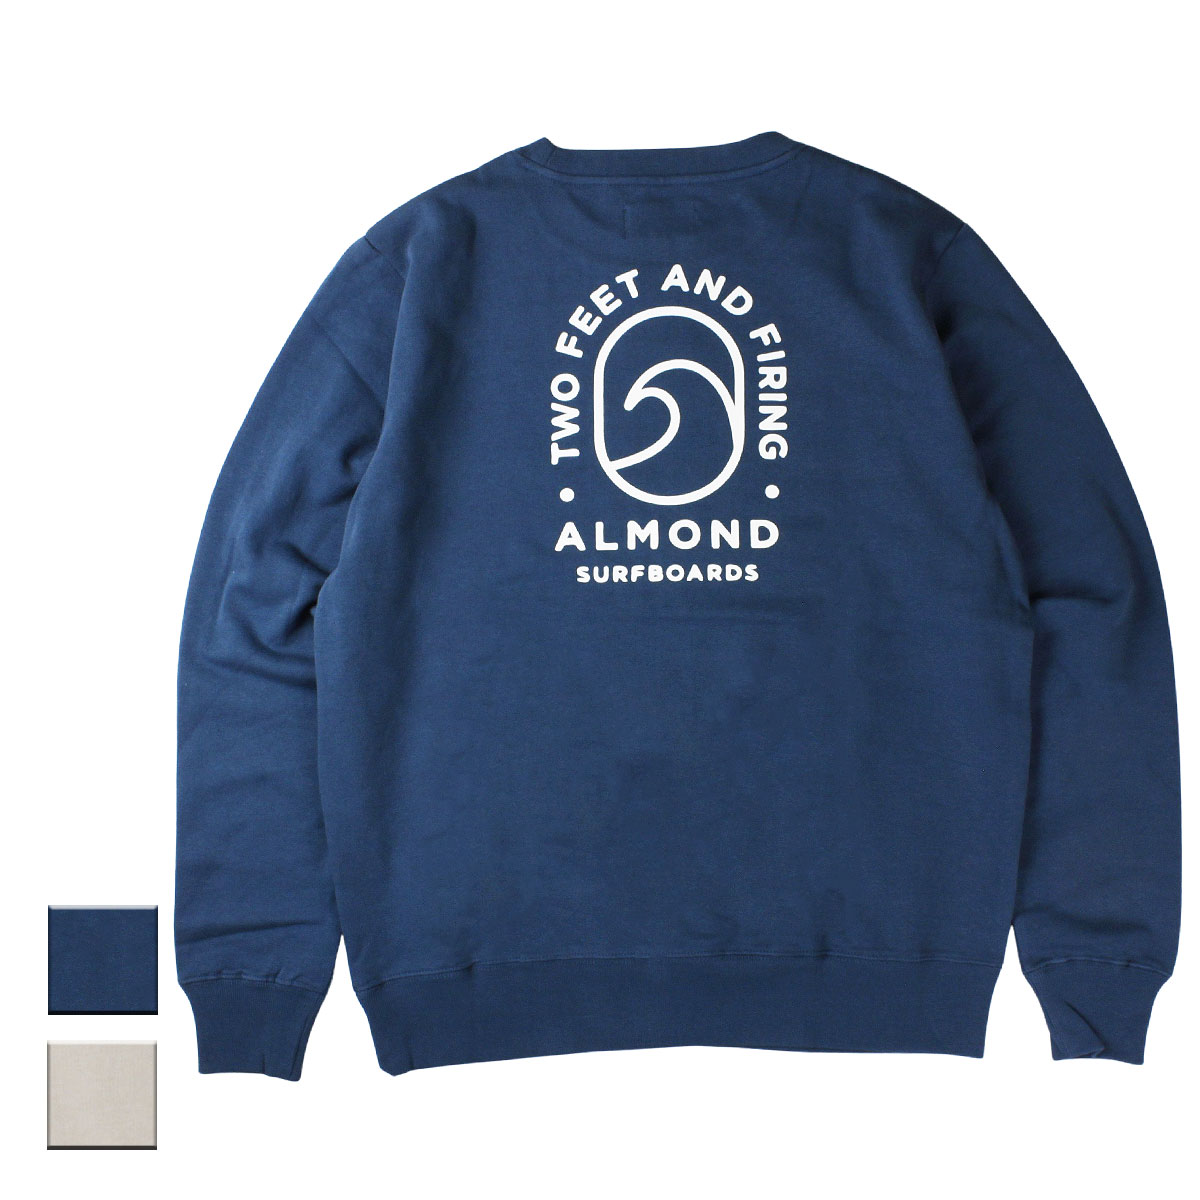 Almond Surf アーモンドサーフボードデザイン TWO FEET AND FIRRING